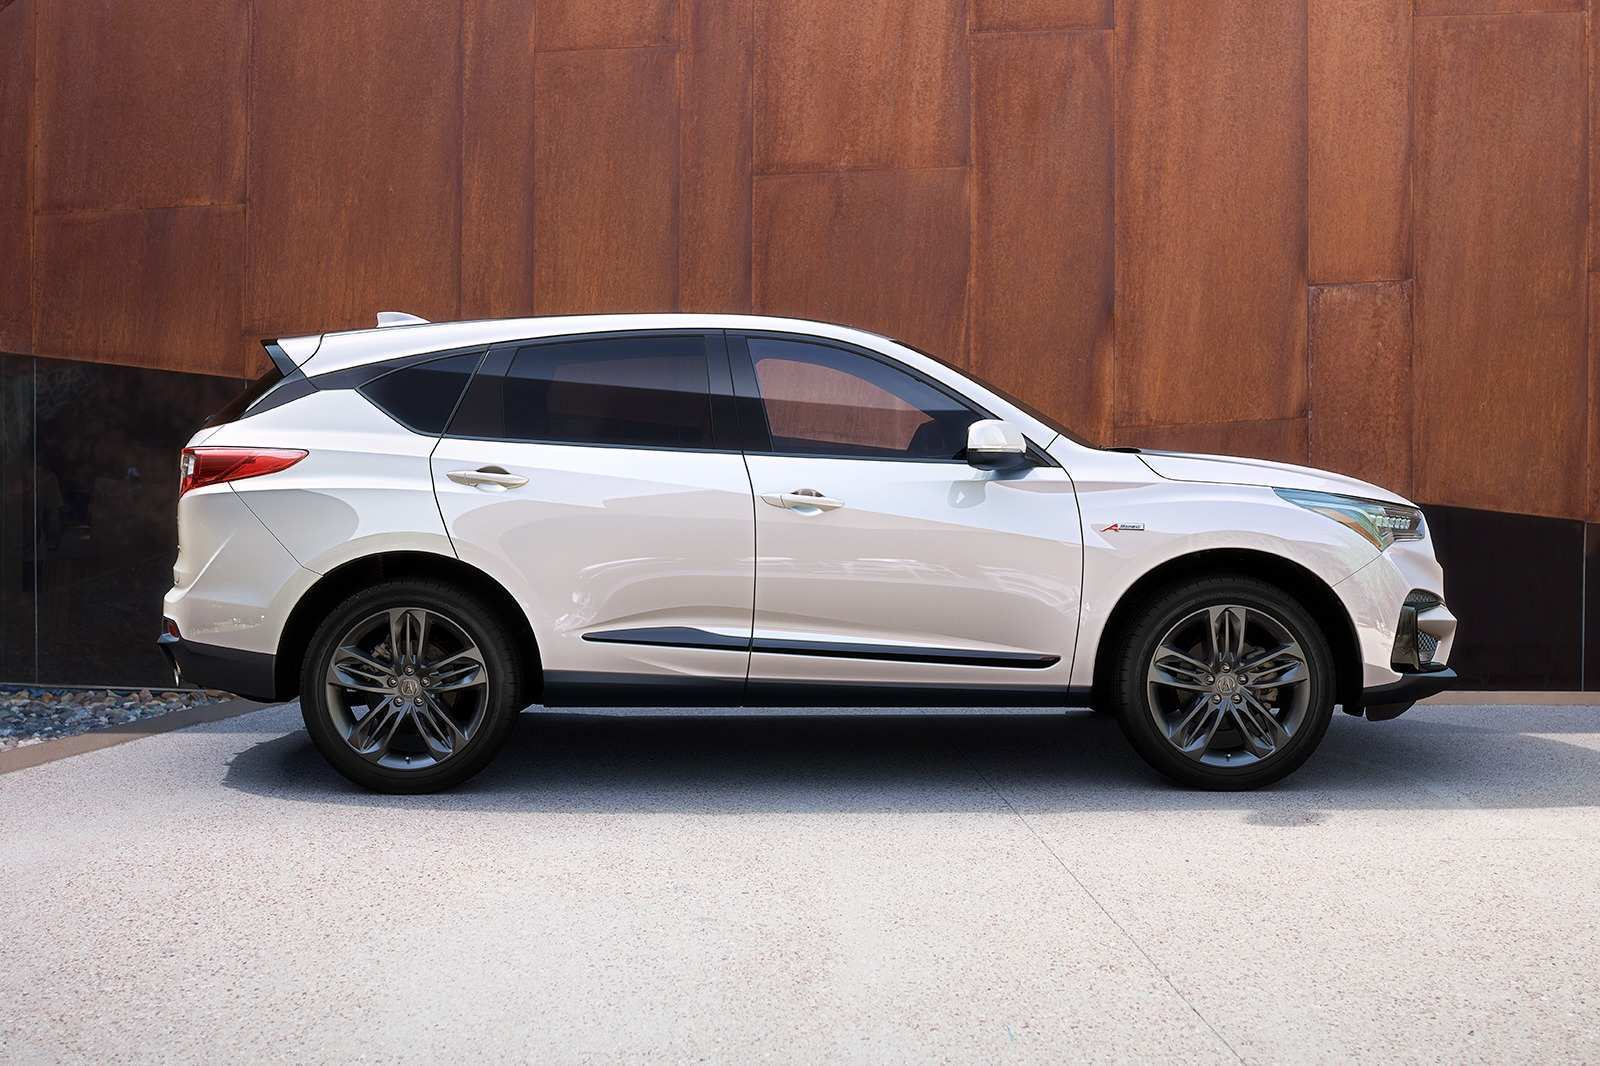 14 Great The Pictures Of 2019 Acura Rdx Price Interior with The Pictures Of 2019 Acura Rdx Price